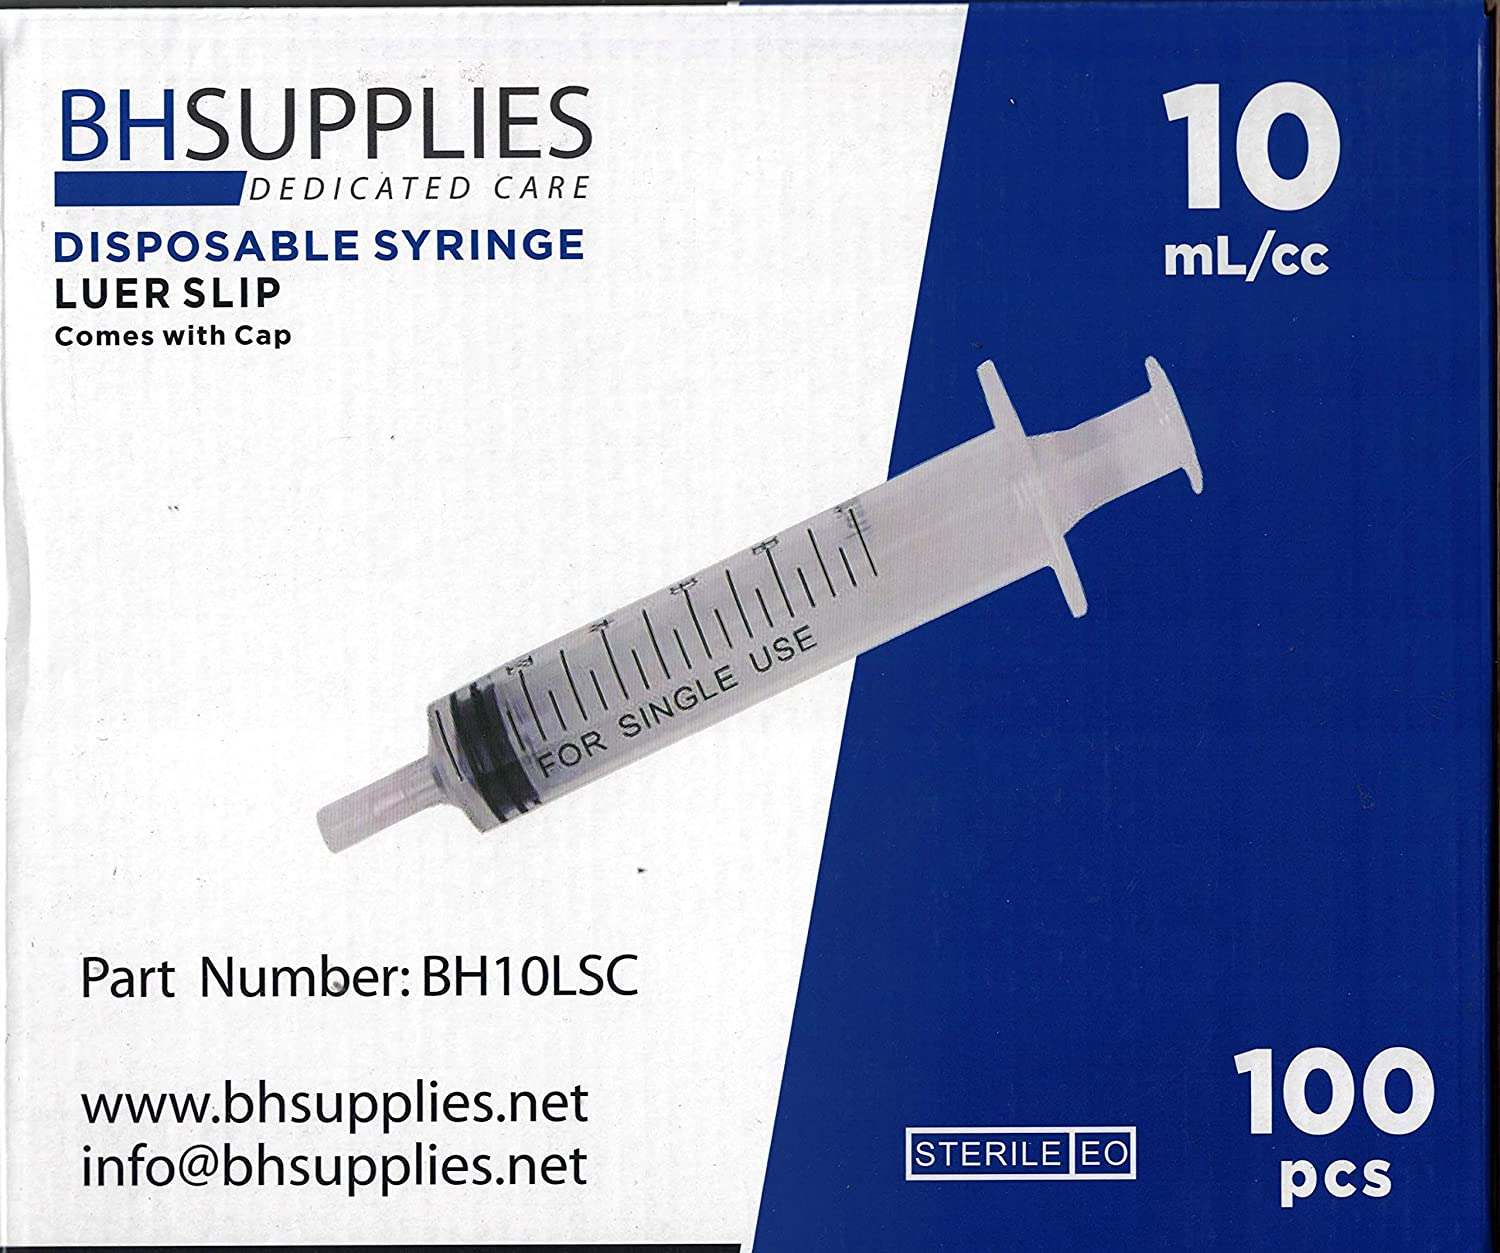 10ml Sterile Luer Slip Tip Syringe - with Covers -100 Syringes by BH Supplies (No Needle) Individually Sealed